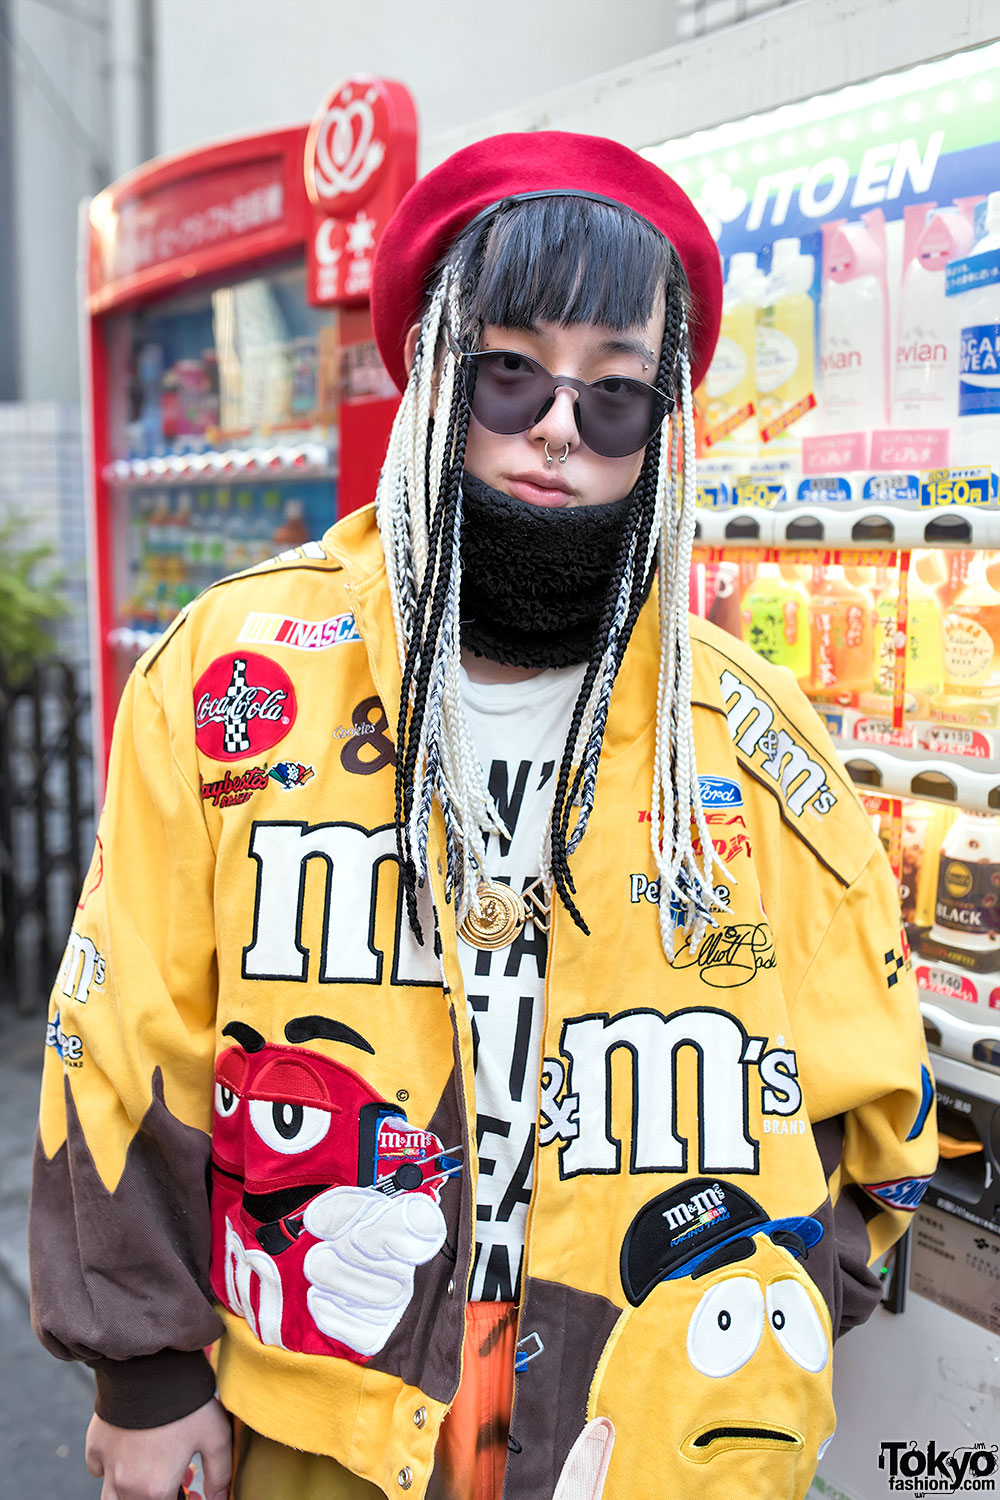 Dog Harajuku Fashion Fangophilia Rings Myob Nyc Bag: Harajuku Guy In M&M's Bomber Jacket, Thrift Store